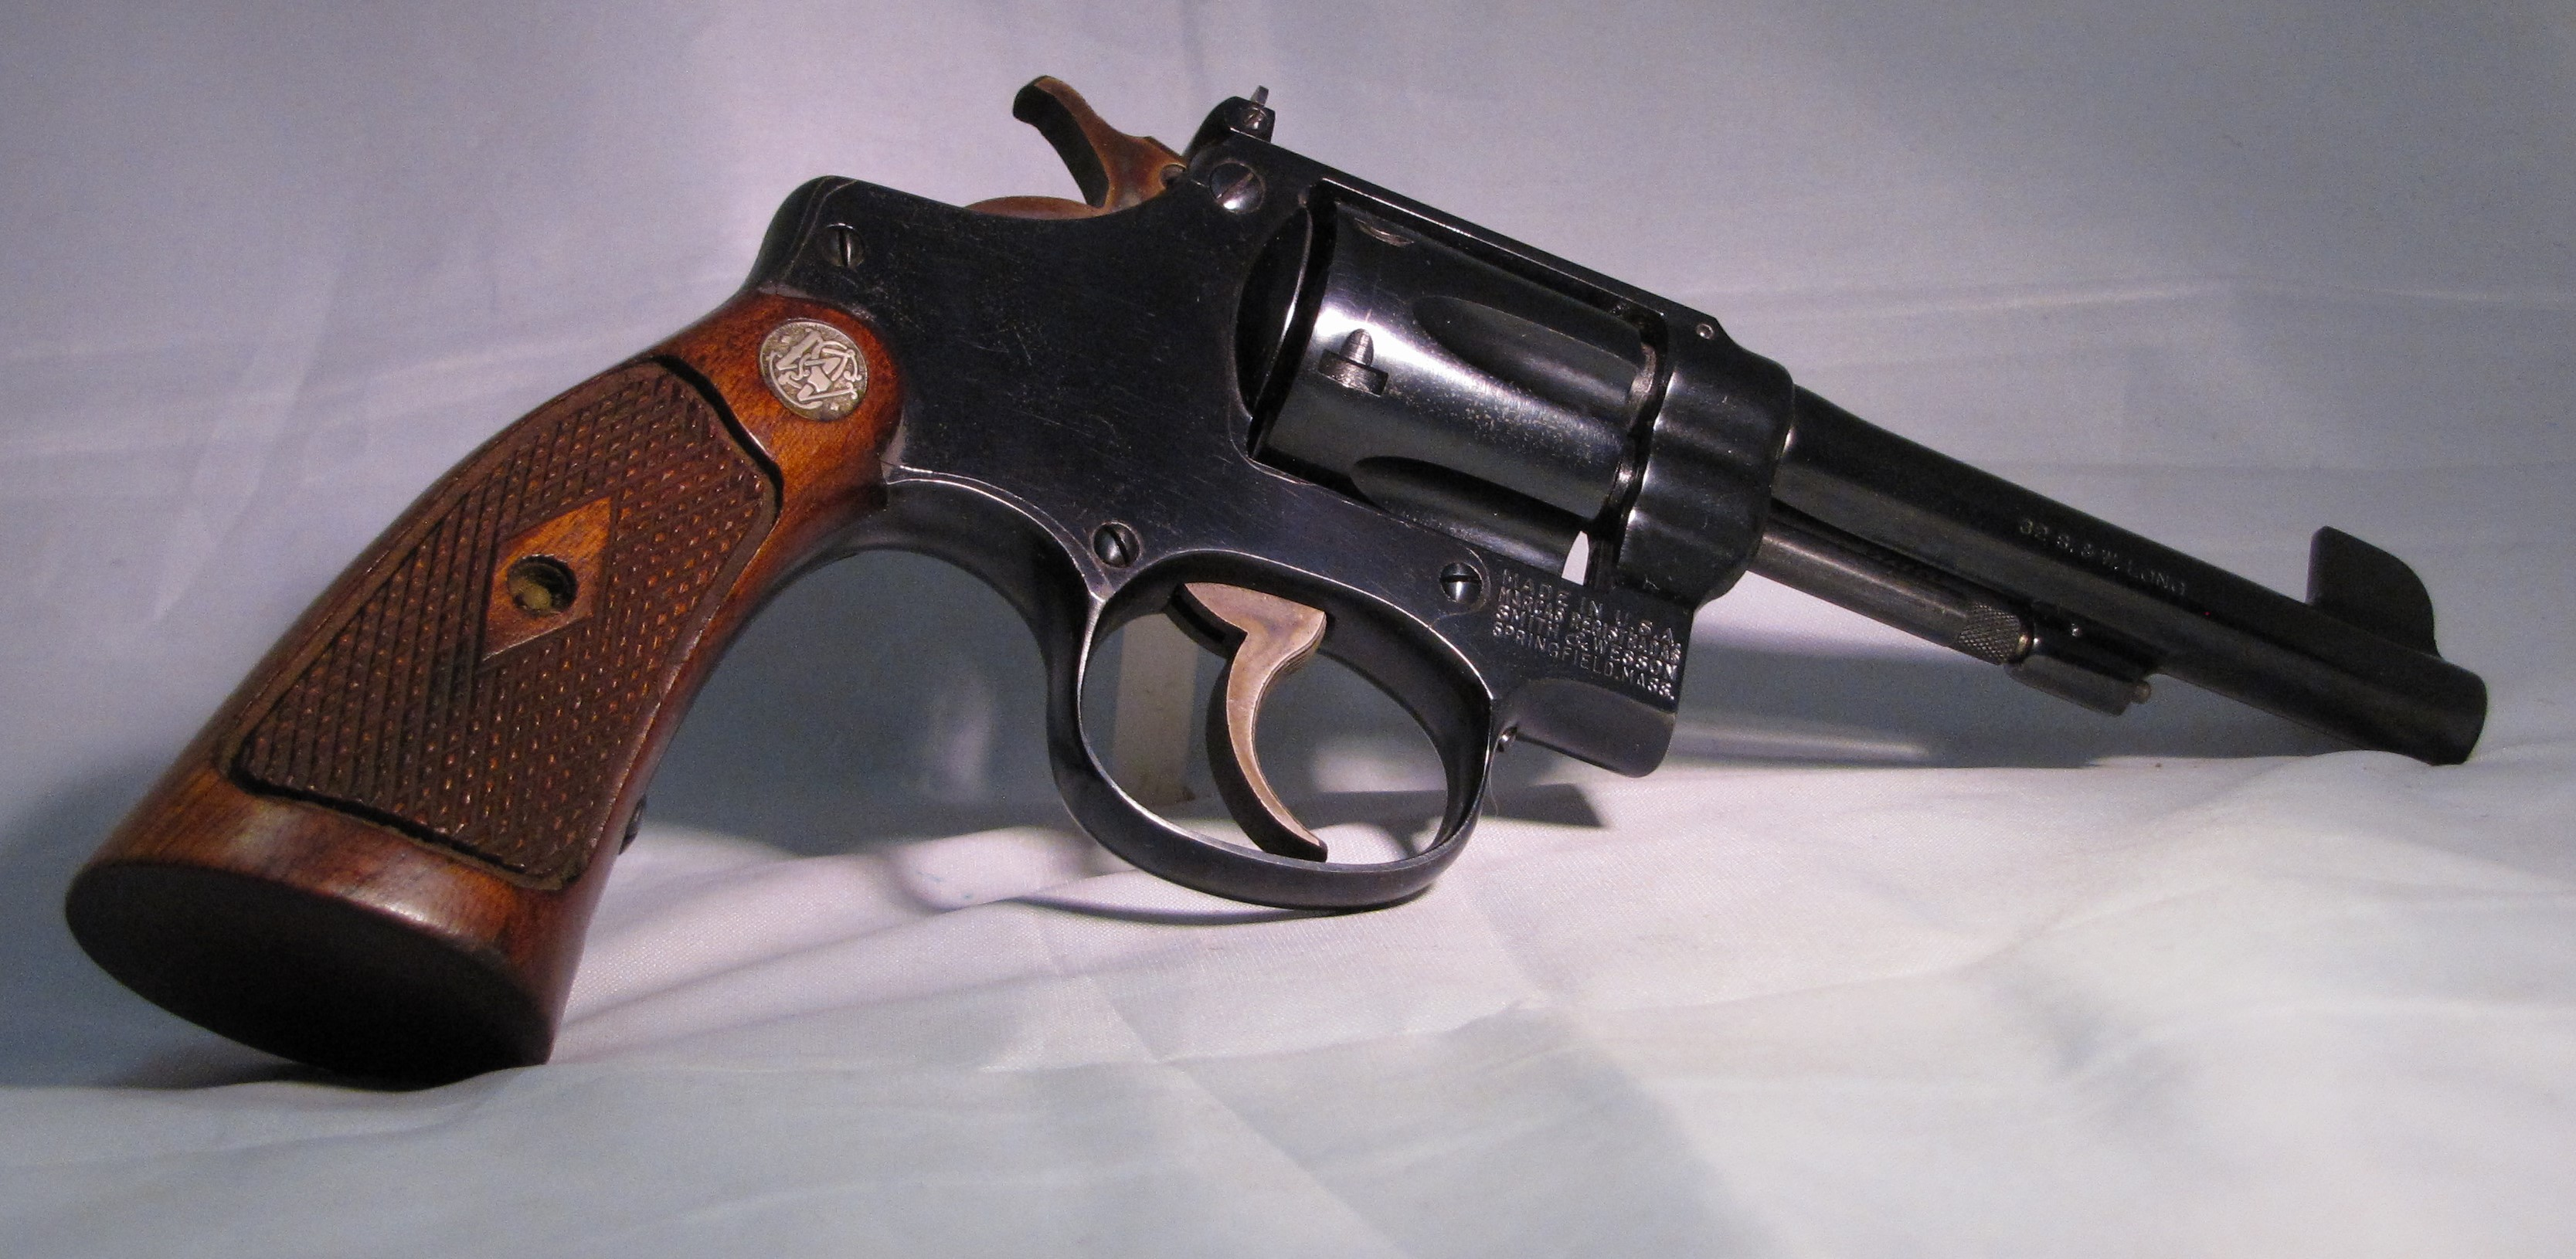 1922 Smith & Wesson I-Frame Target Model 32 - Cartridge & Coin